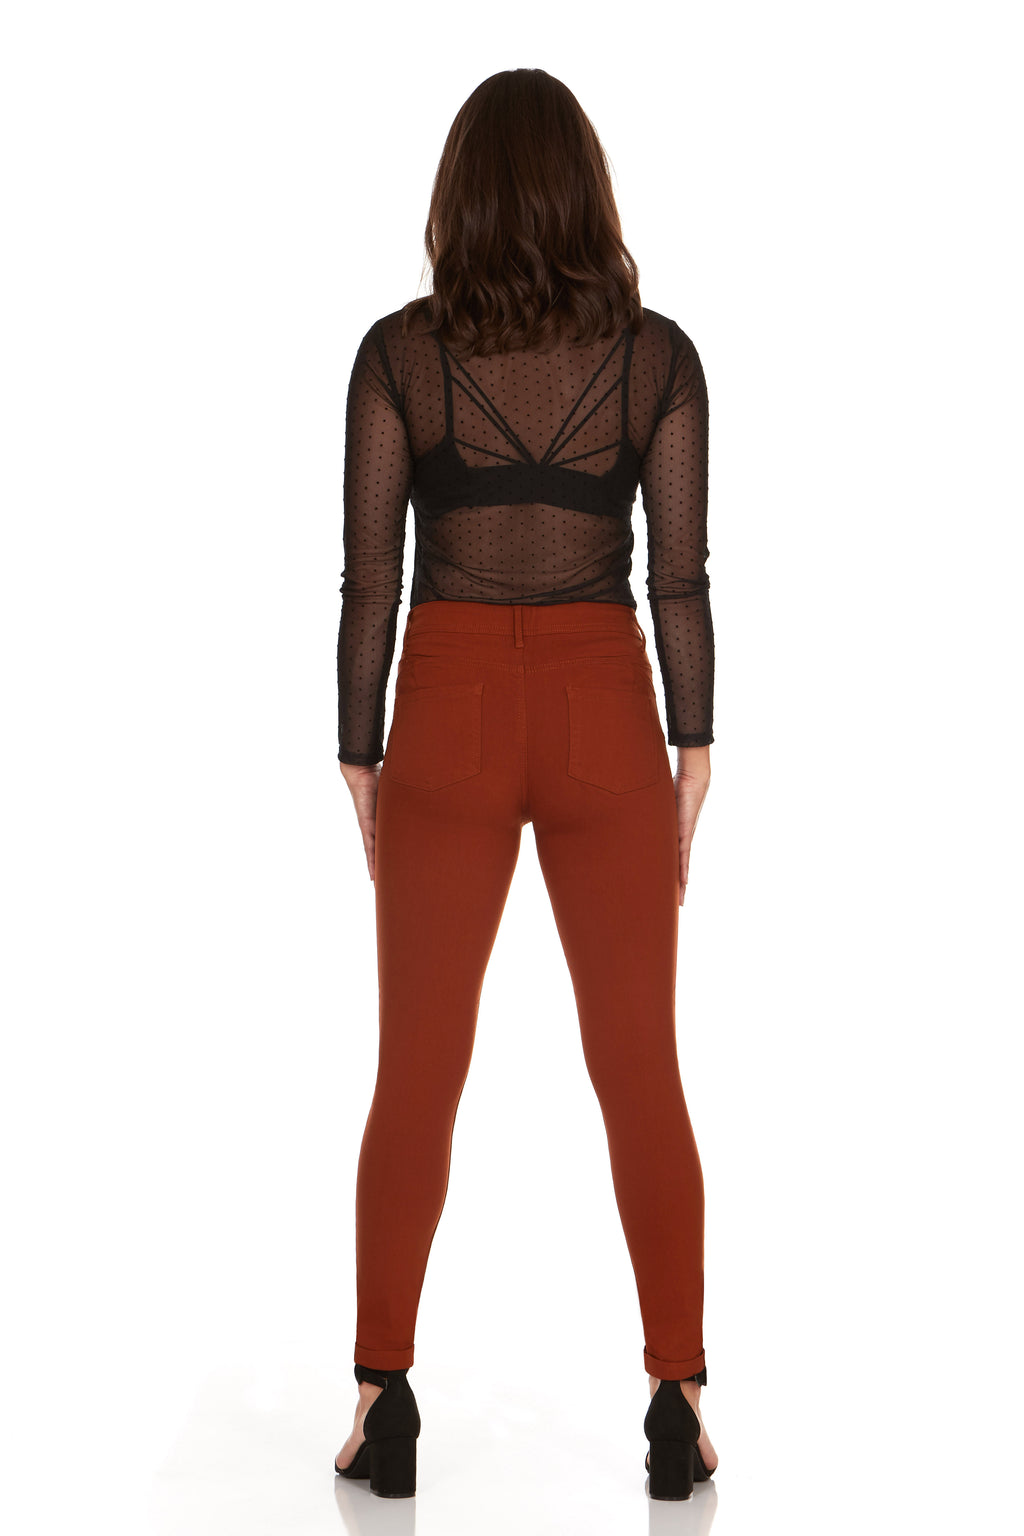 ELITE JEANS Mid Rise Push Up  Skinny Jeans Women | Rust (AP18308-84)